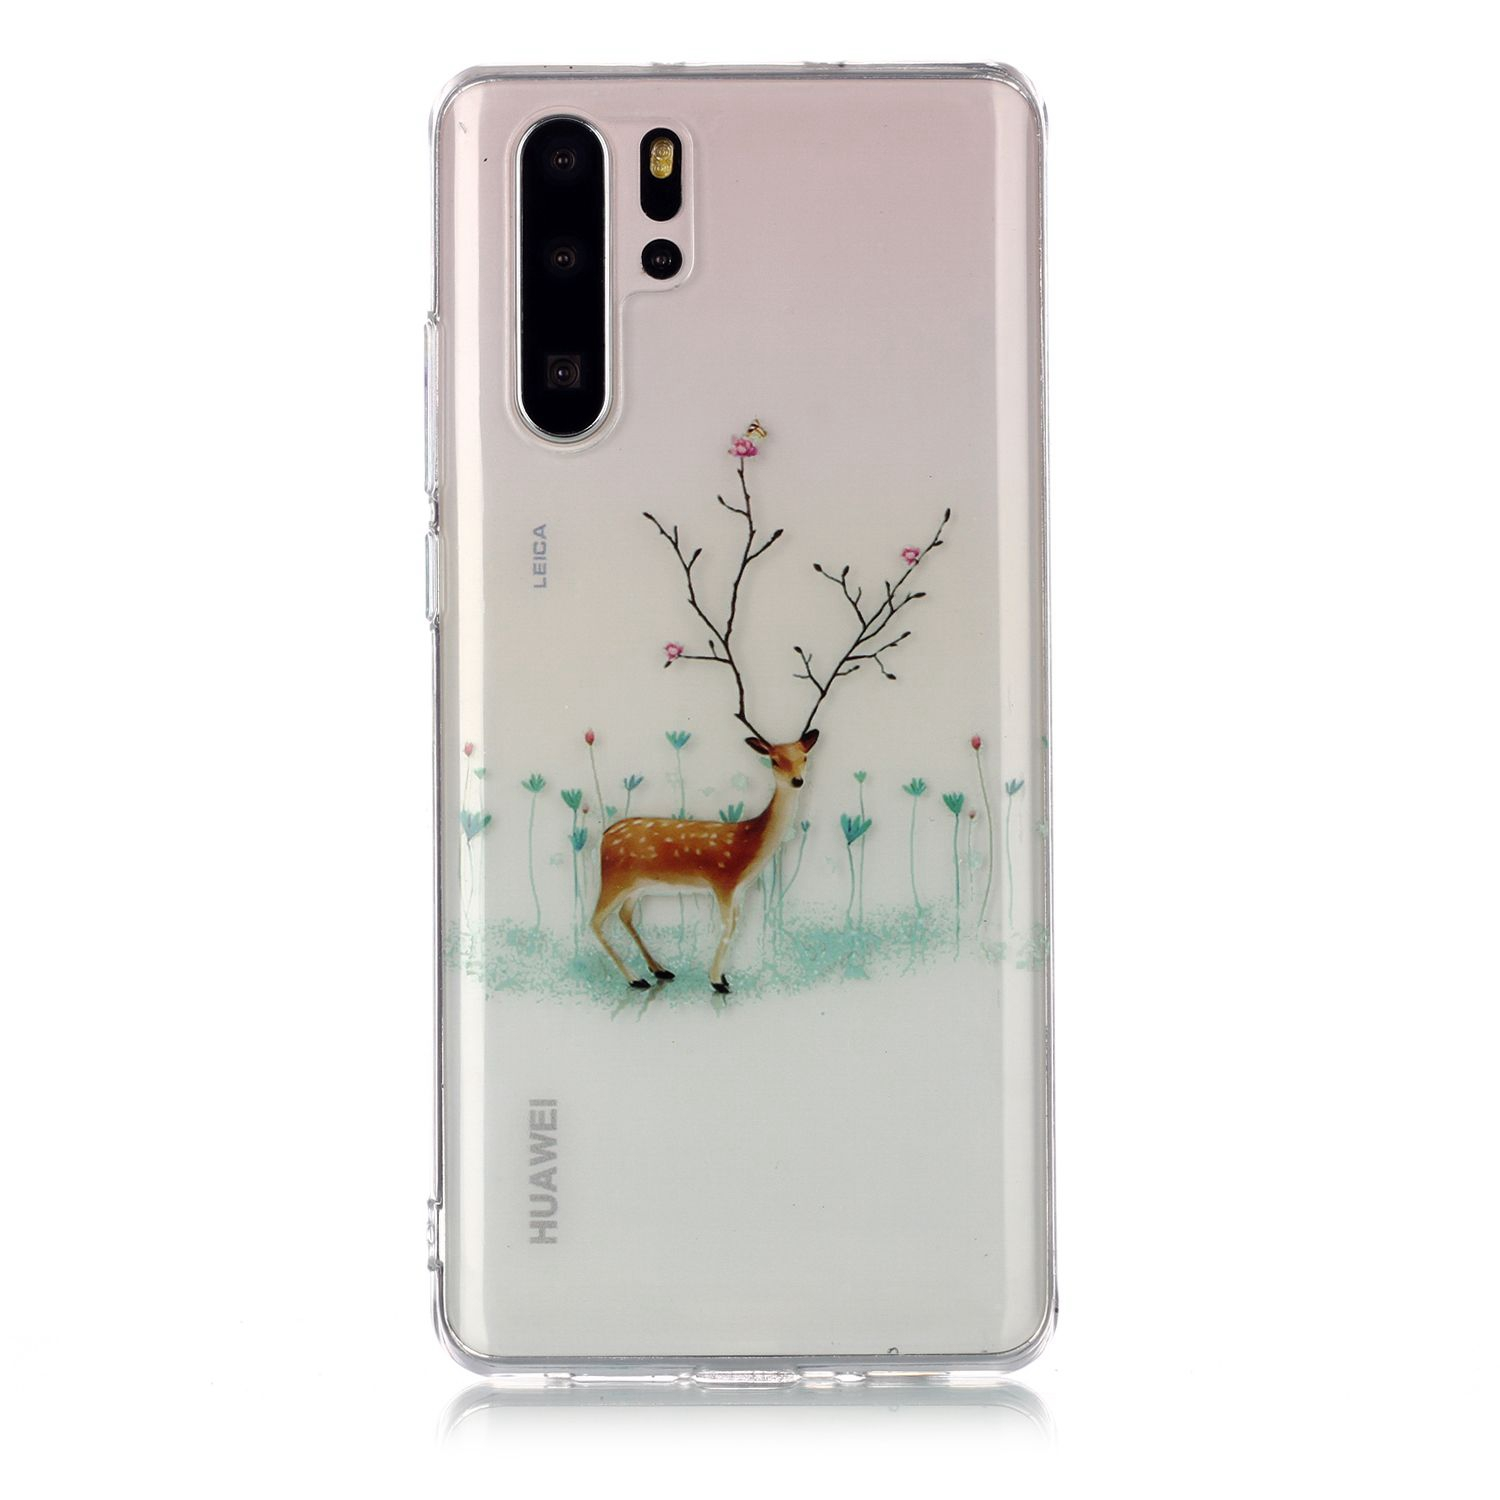 For HUAWEI P30 Pro Christmas Phone Case Protective Shell Super Soft TPU Smartphone Cover Anti-scratch Anti-fall Protection Cover